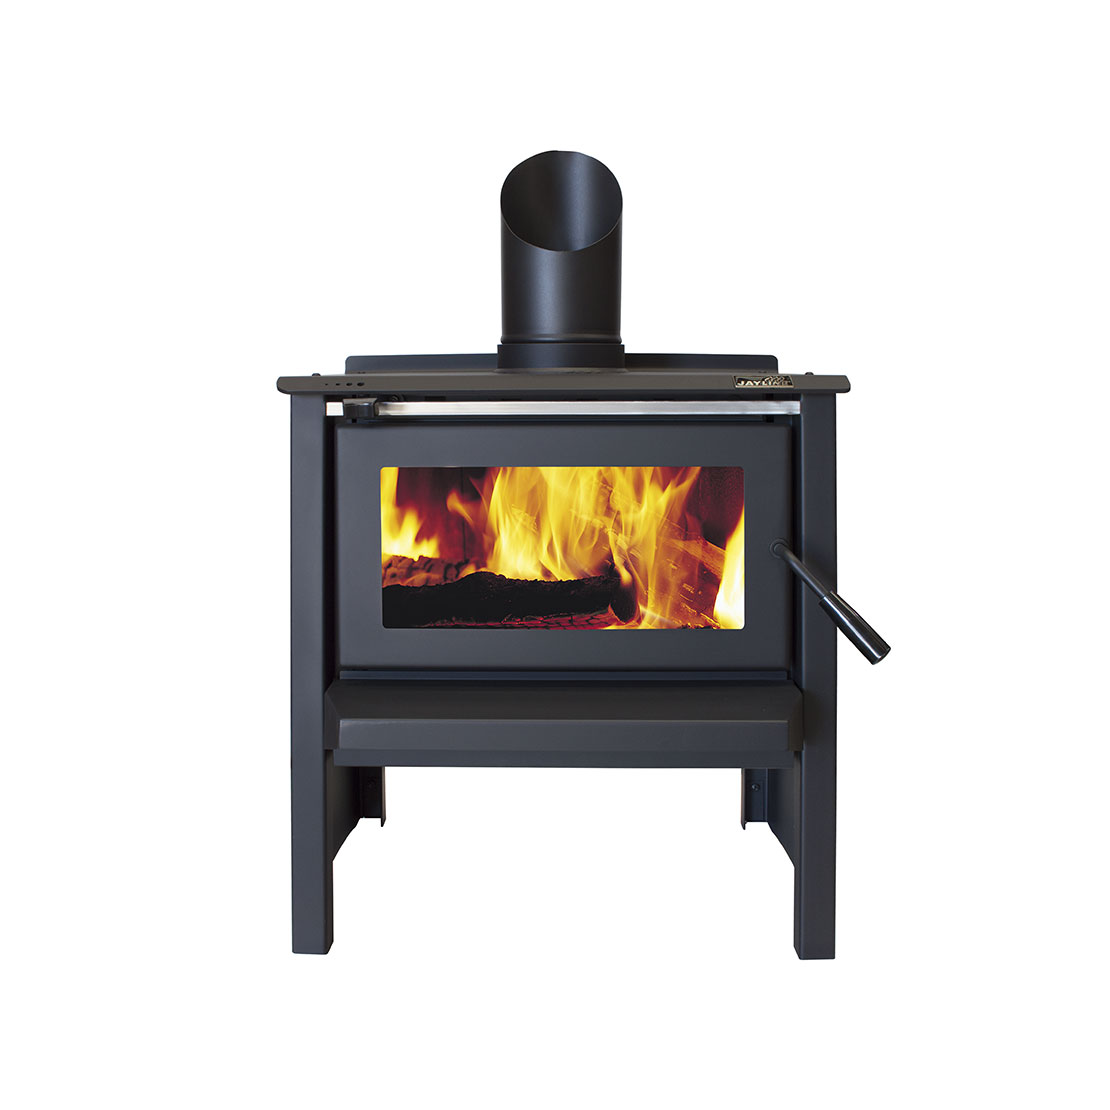 Jayline Freestanding Wood Fires Fireplace Designs For Nz